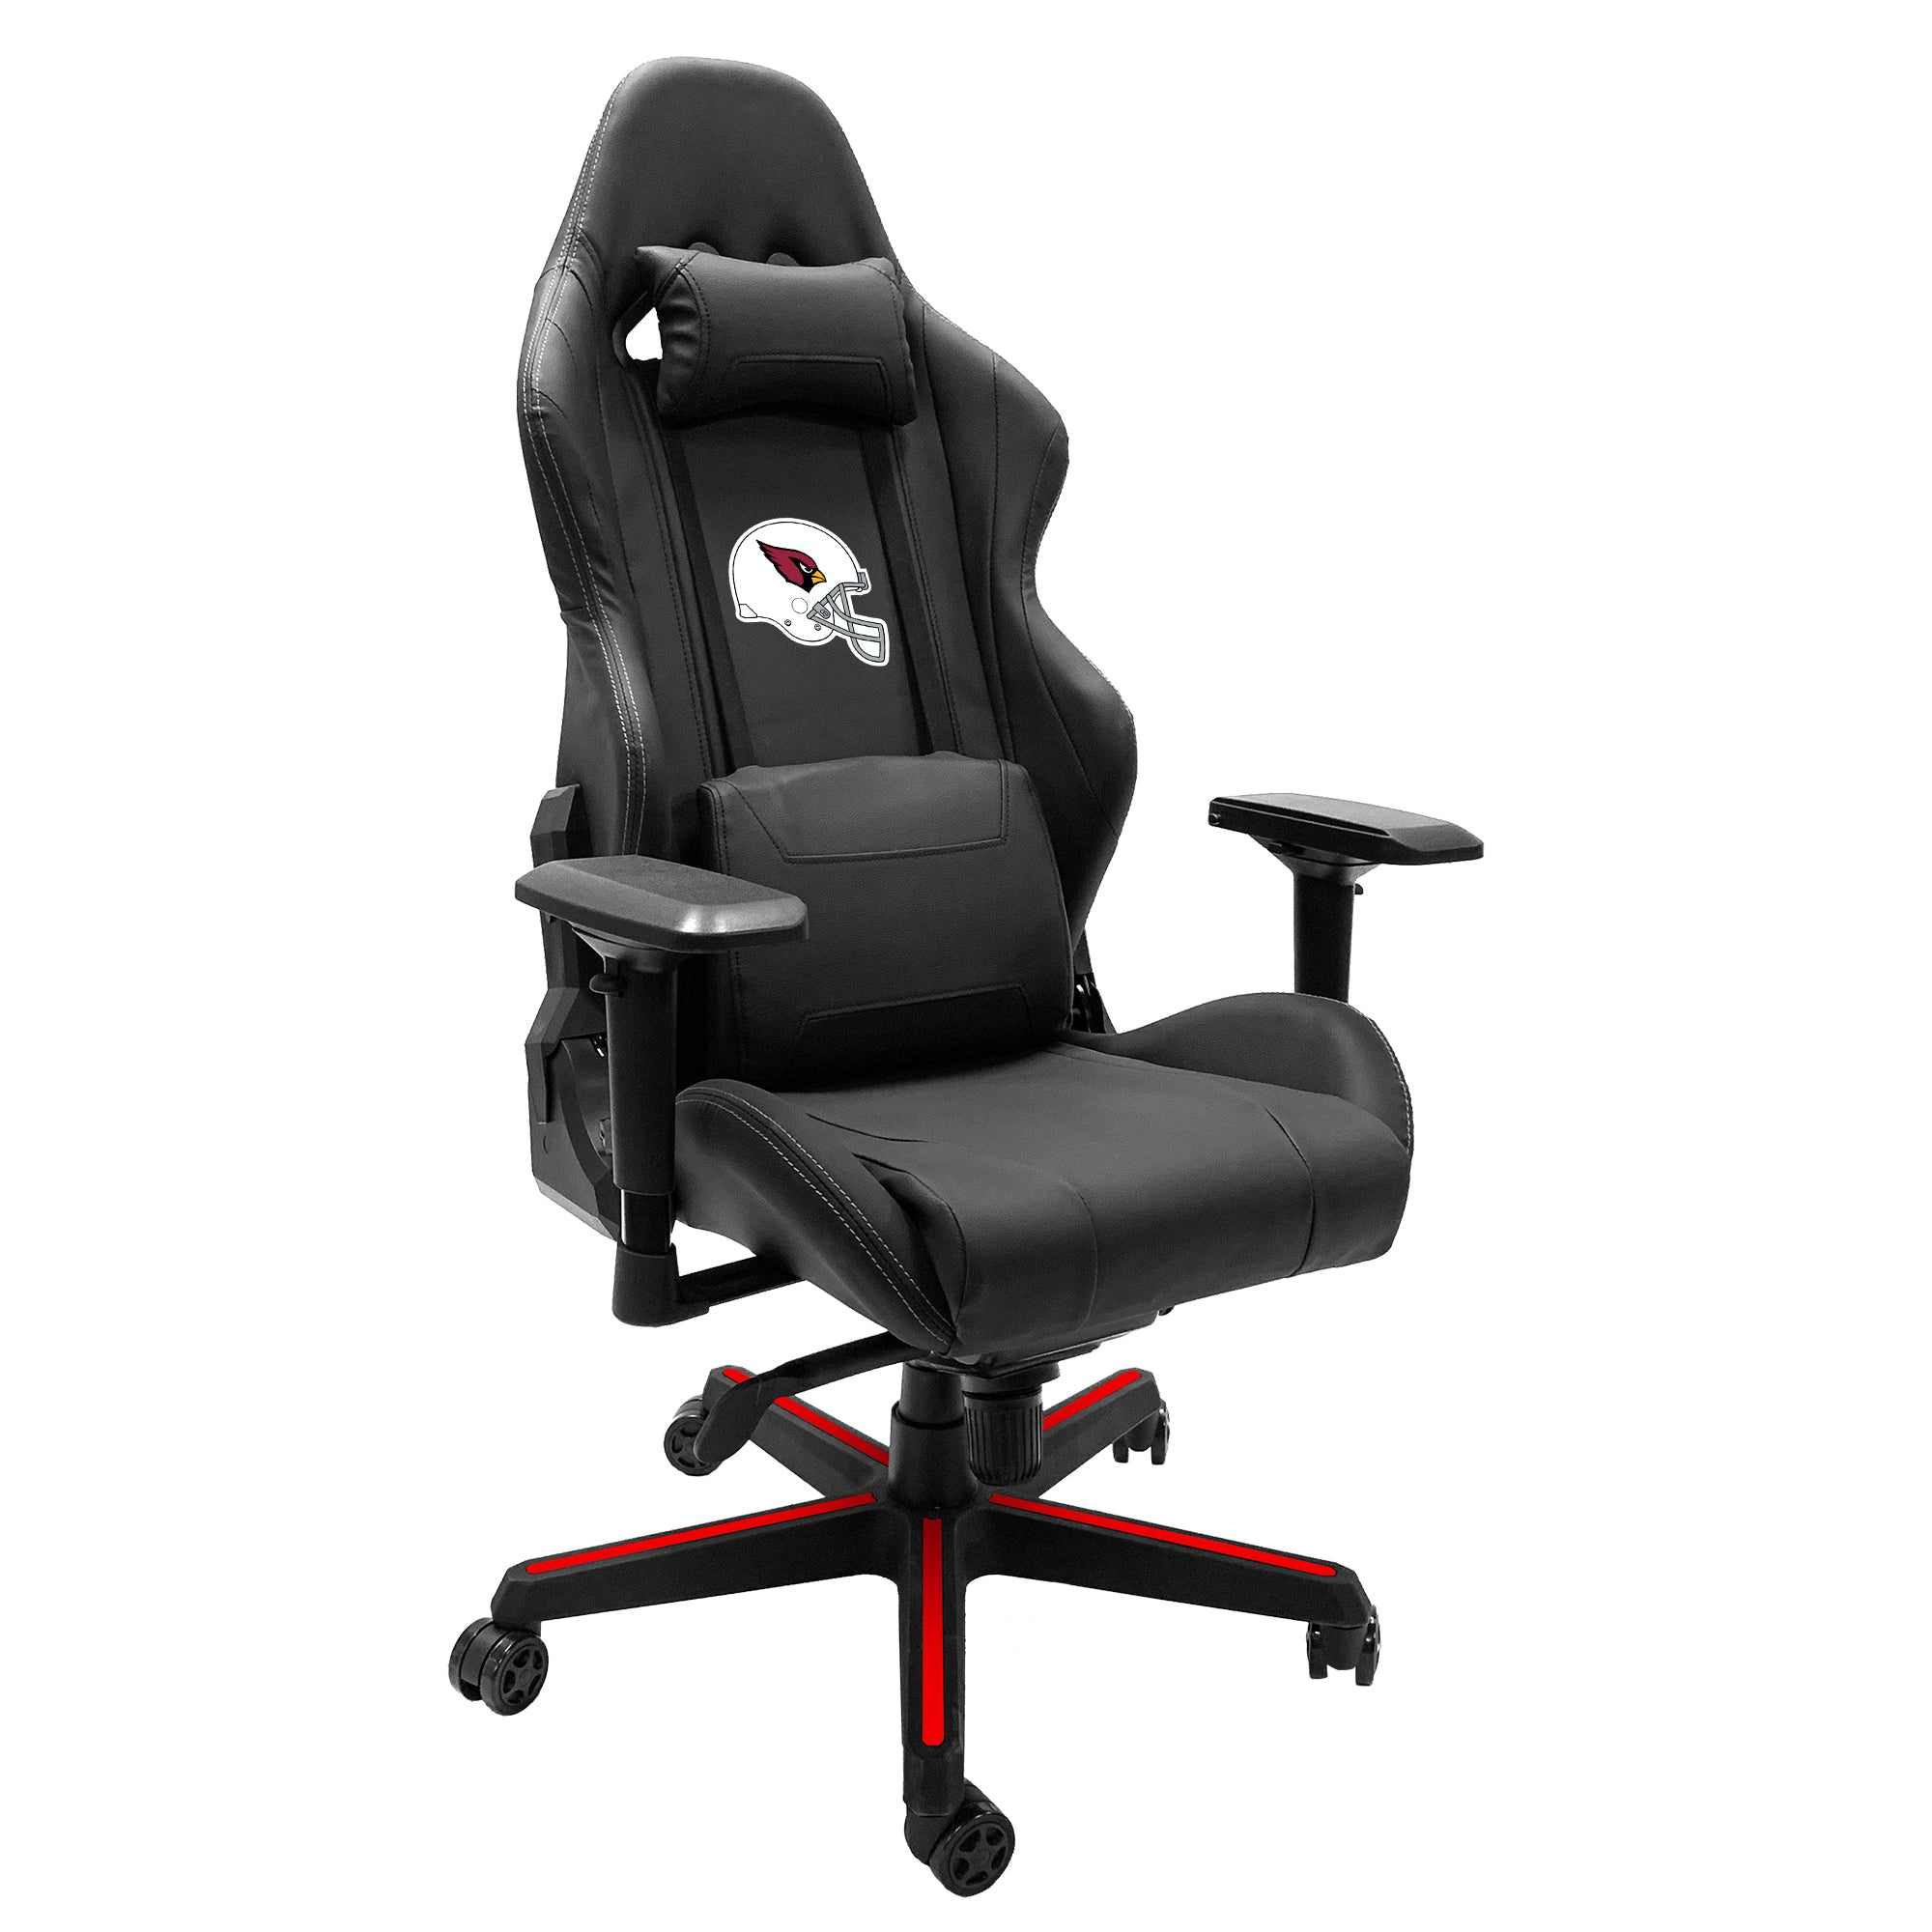 Xpression Gaming Chair with Arizona Cardinals Helmet Logo